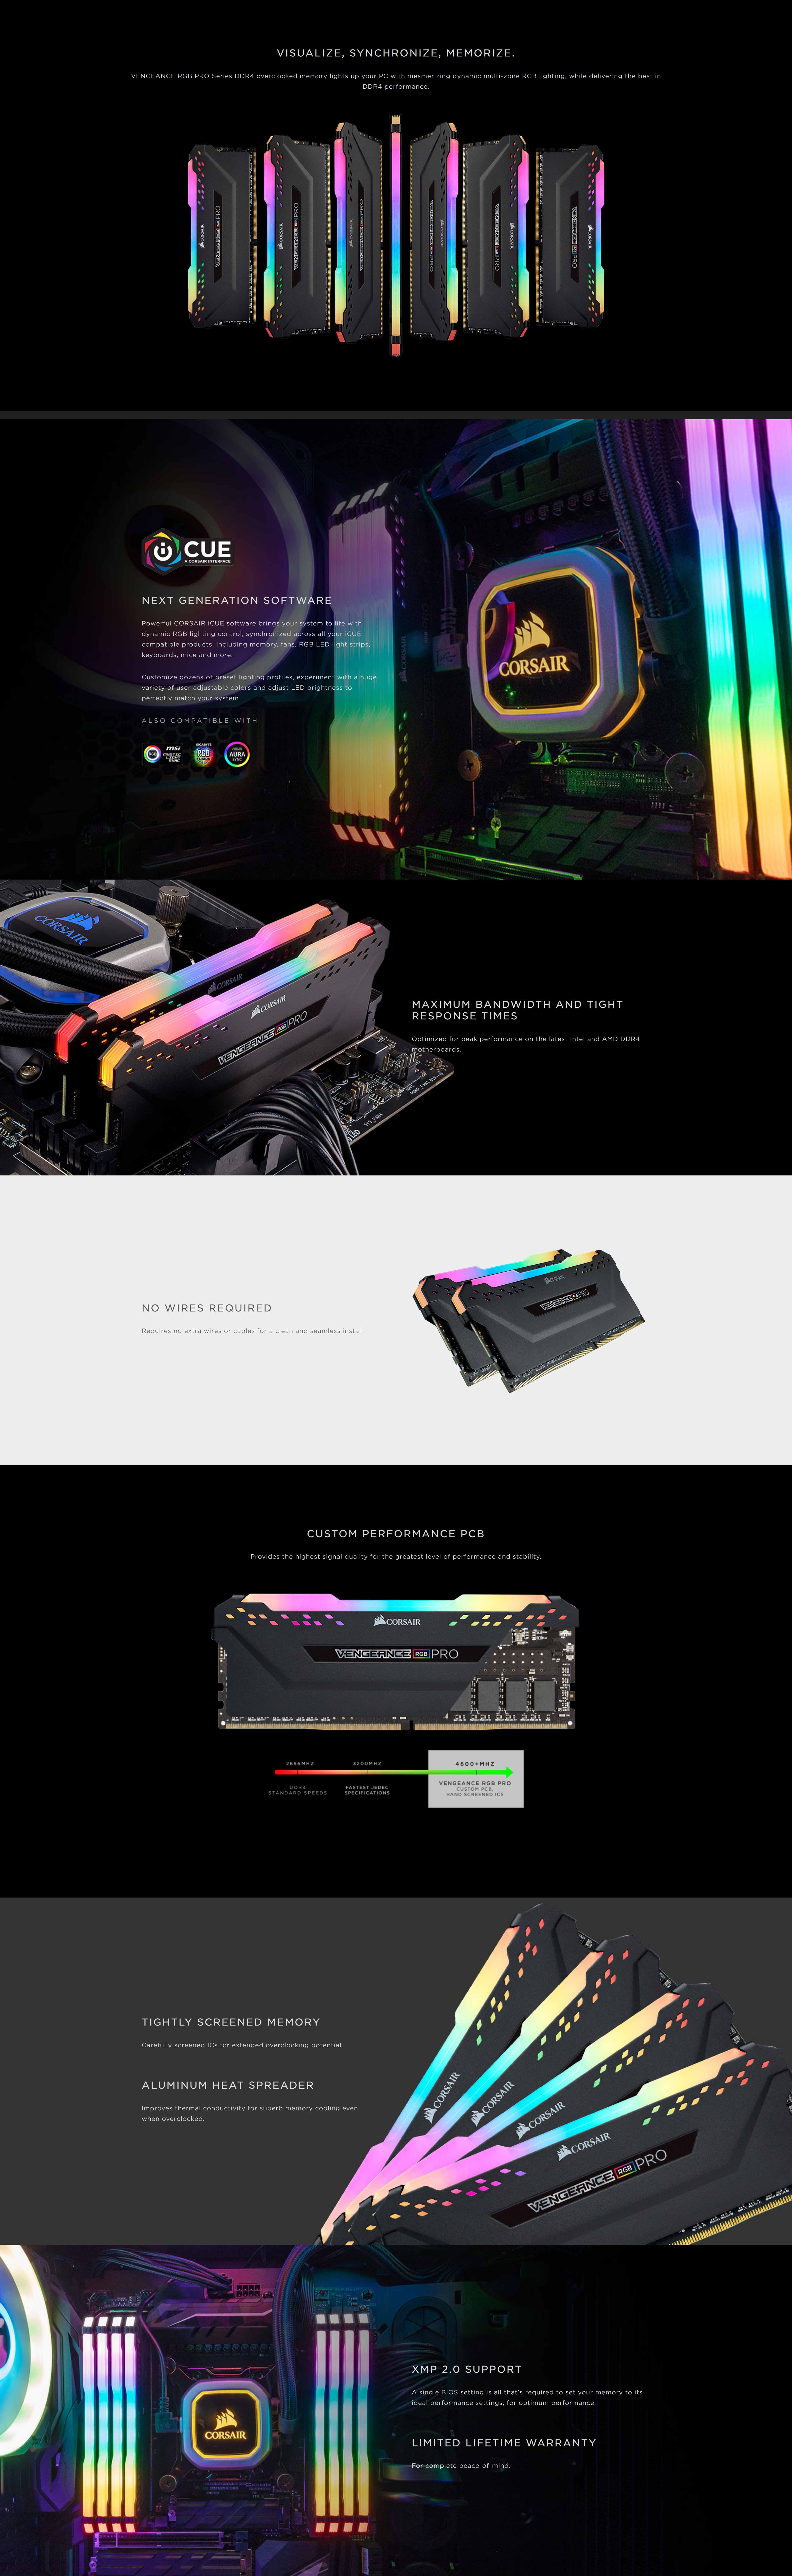 screencapture-corsair-us-en-Categories-Products-Memory-Vengeance-PRO-RGB-Black-p-CMW16GX4M2Z3600C18-2020-04-27-14_55_24.jpg